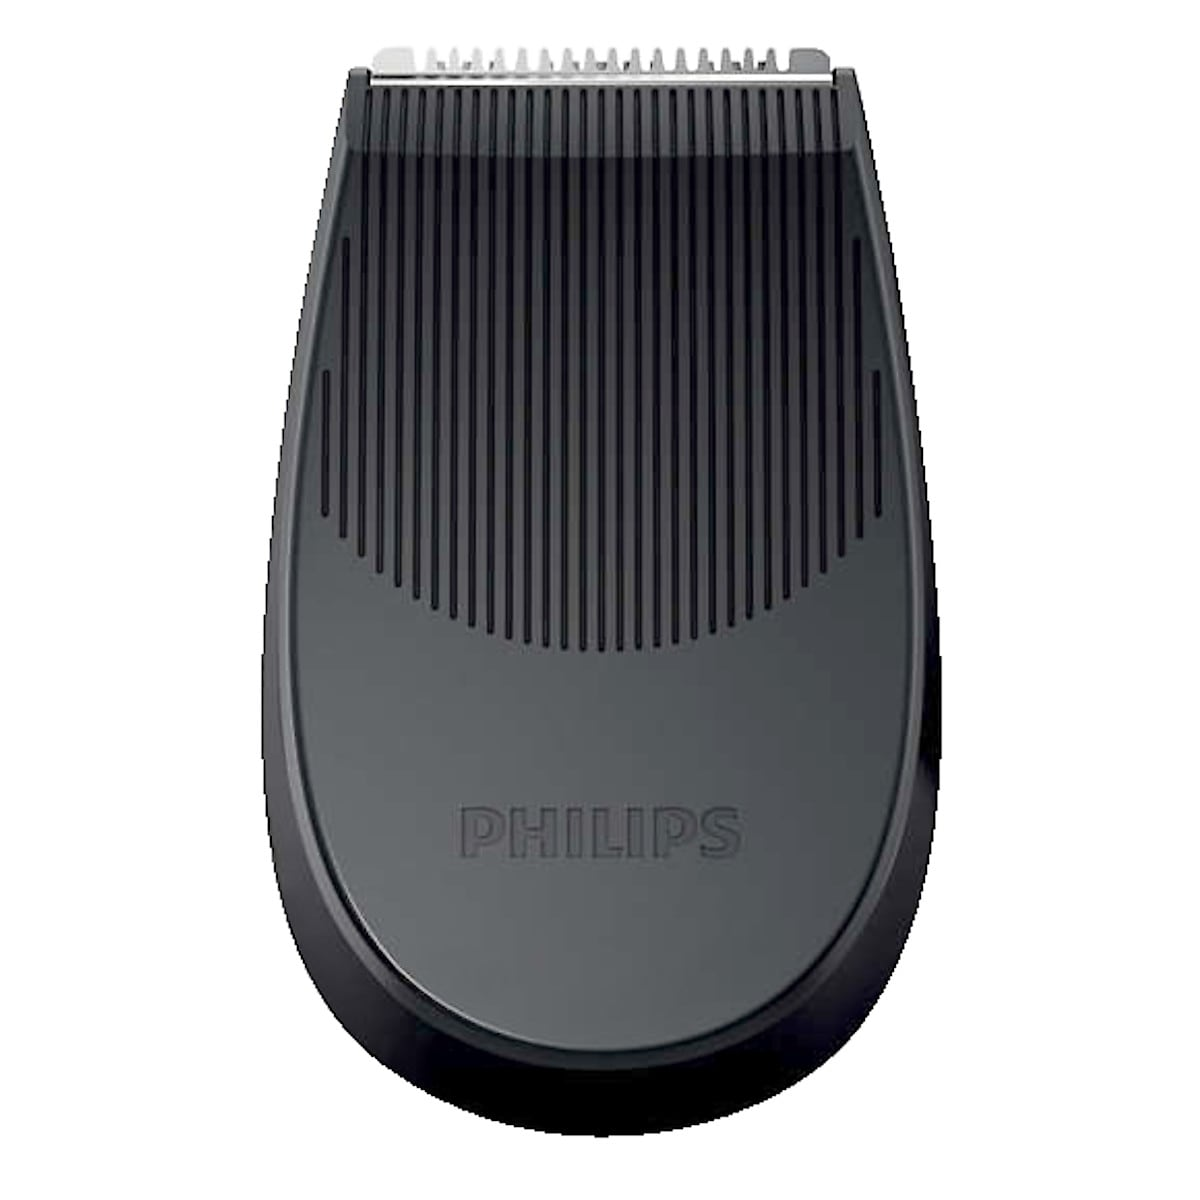 Philips AquaTouch Wet and Dry S5050/06, barbermaskin